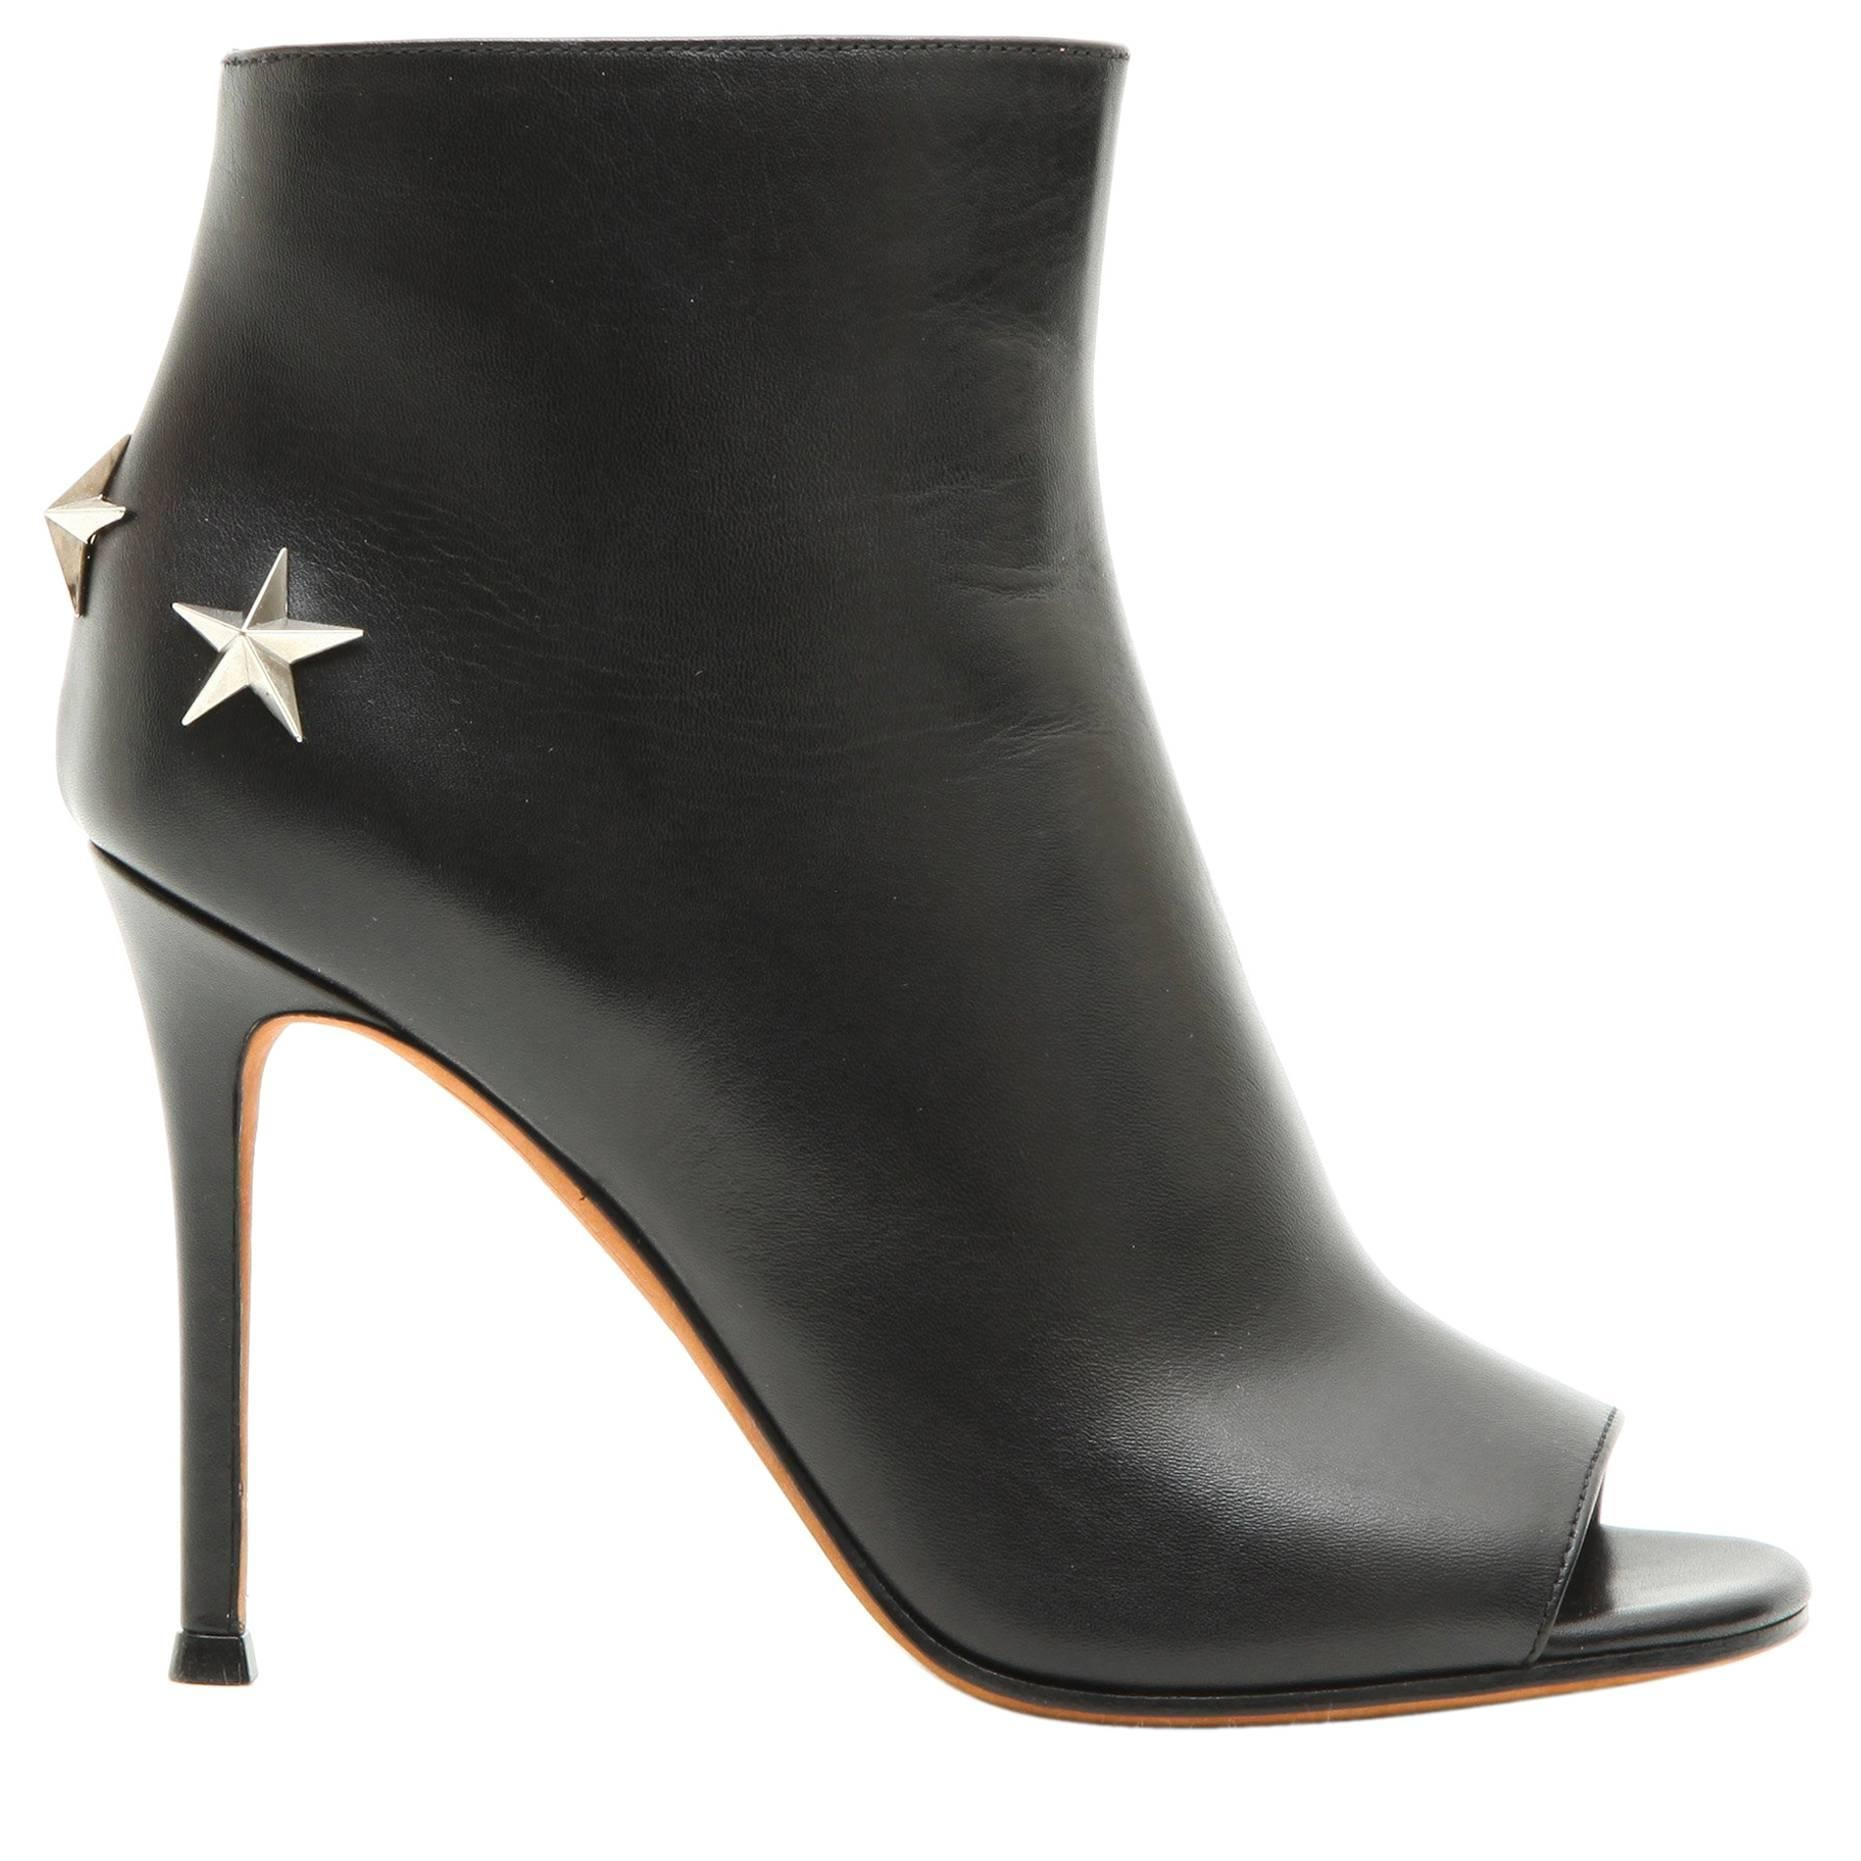 GIVENCHY Open Toe High Heels Boots in